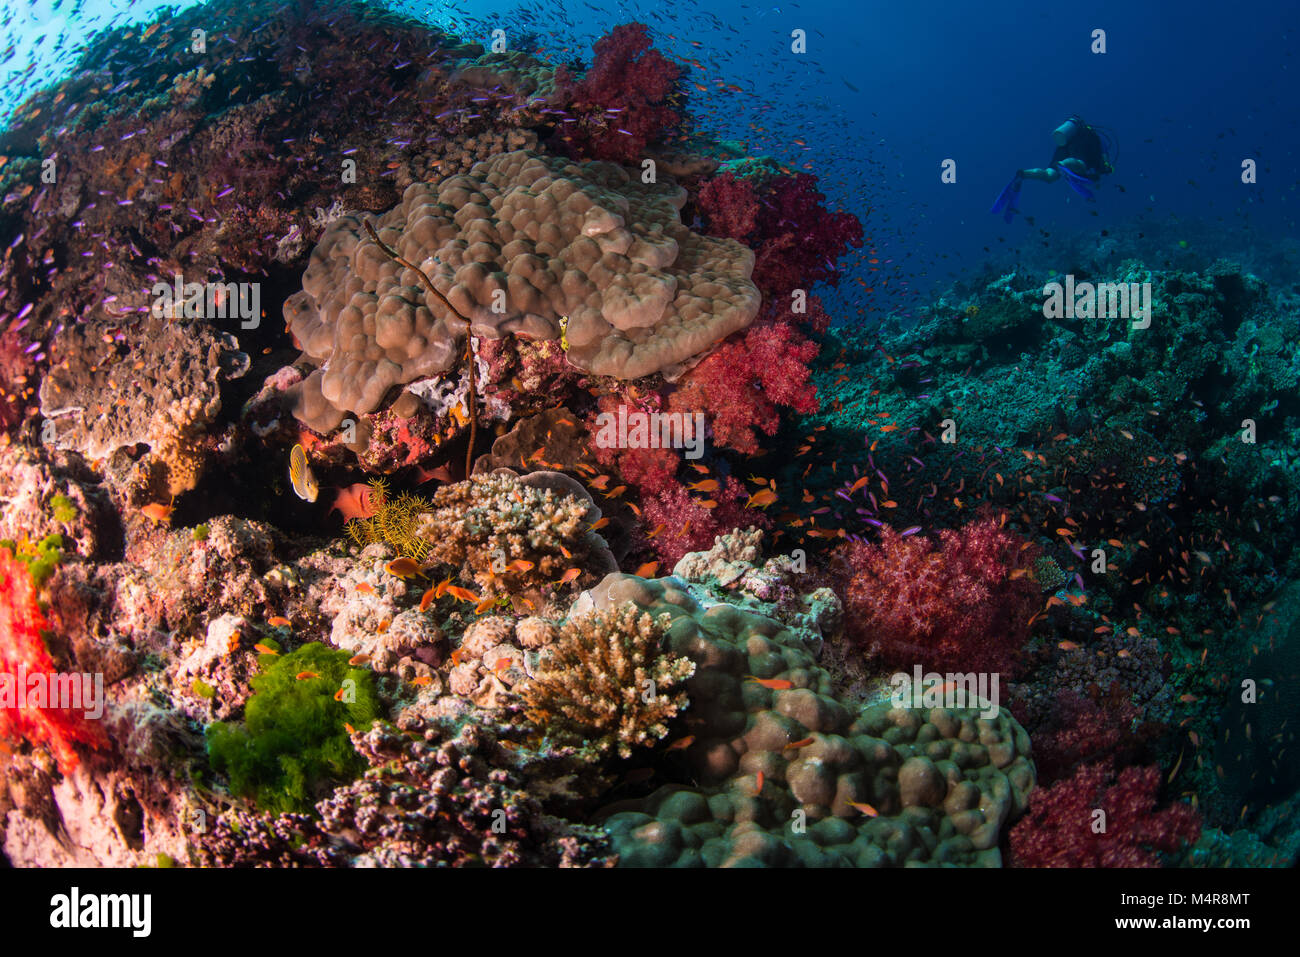 A multitude of different hard corals on the reef - Stock Image